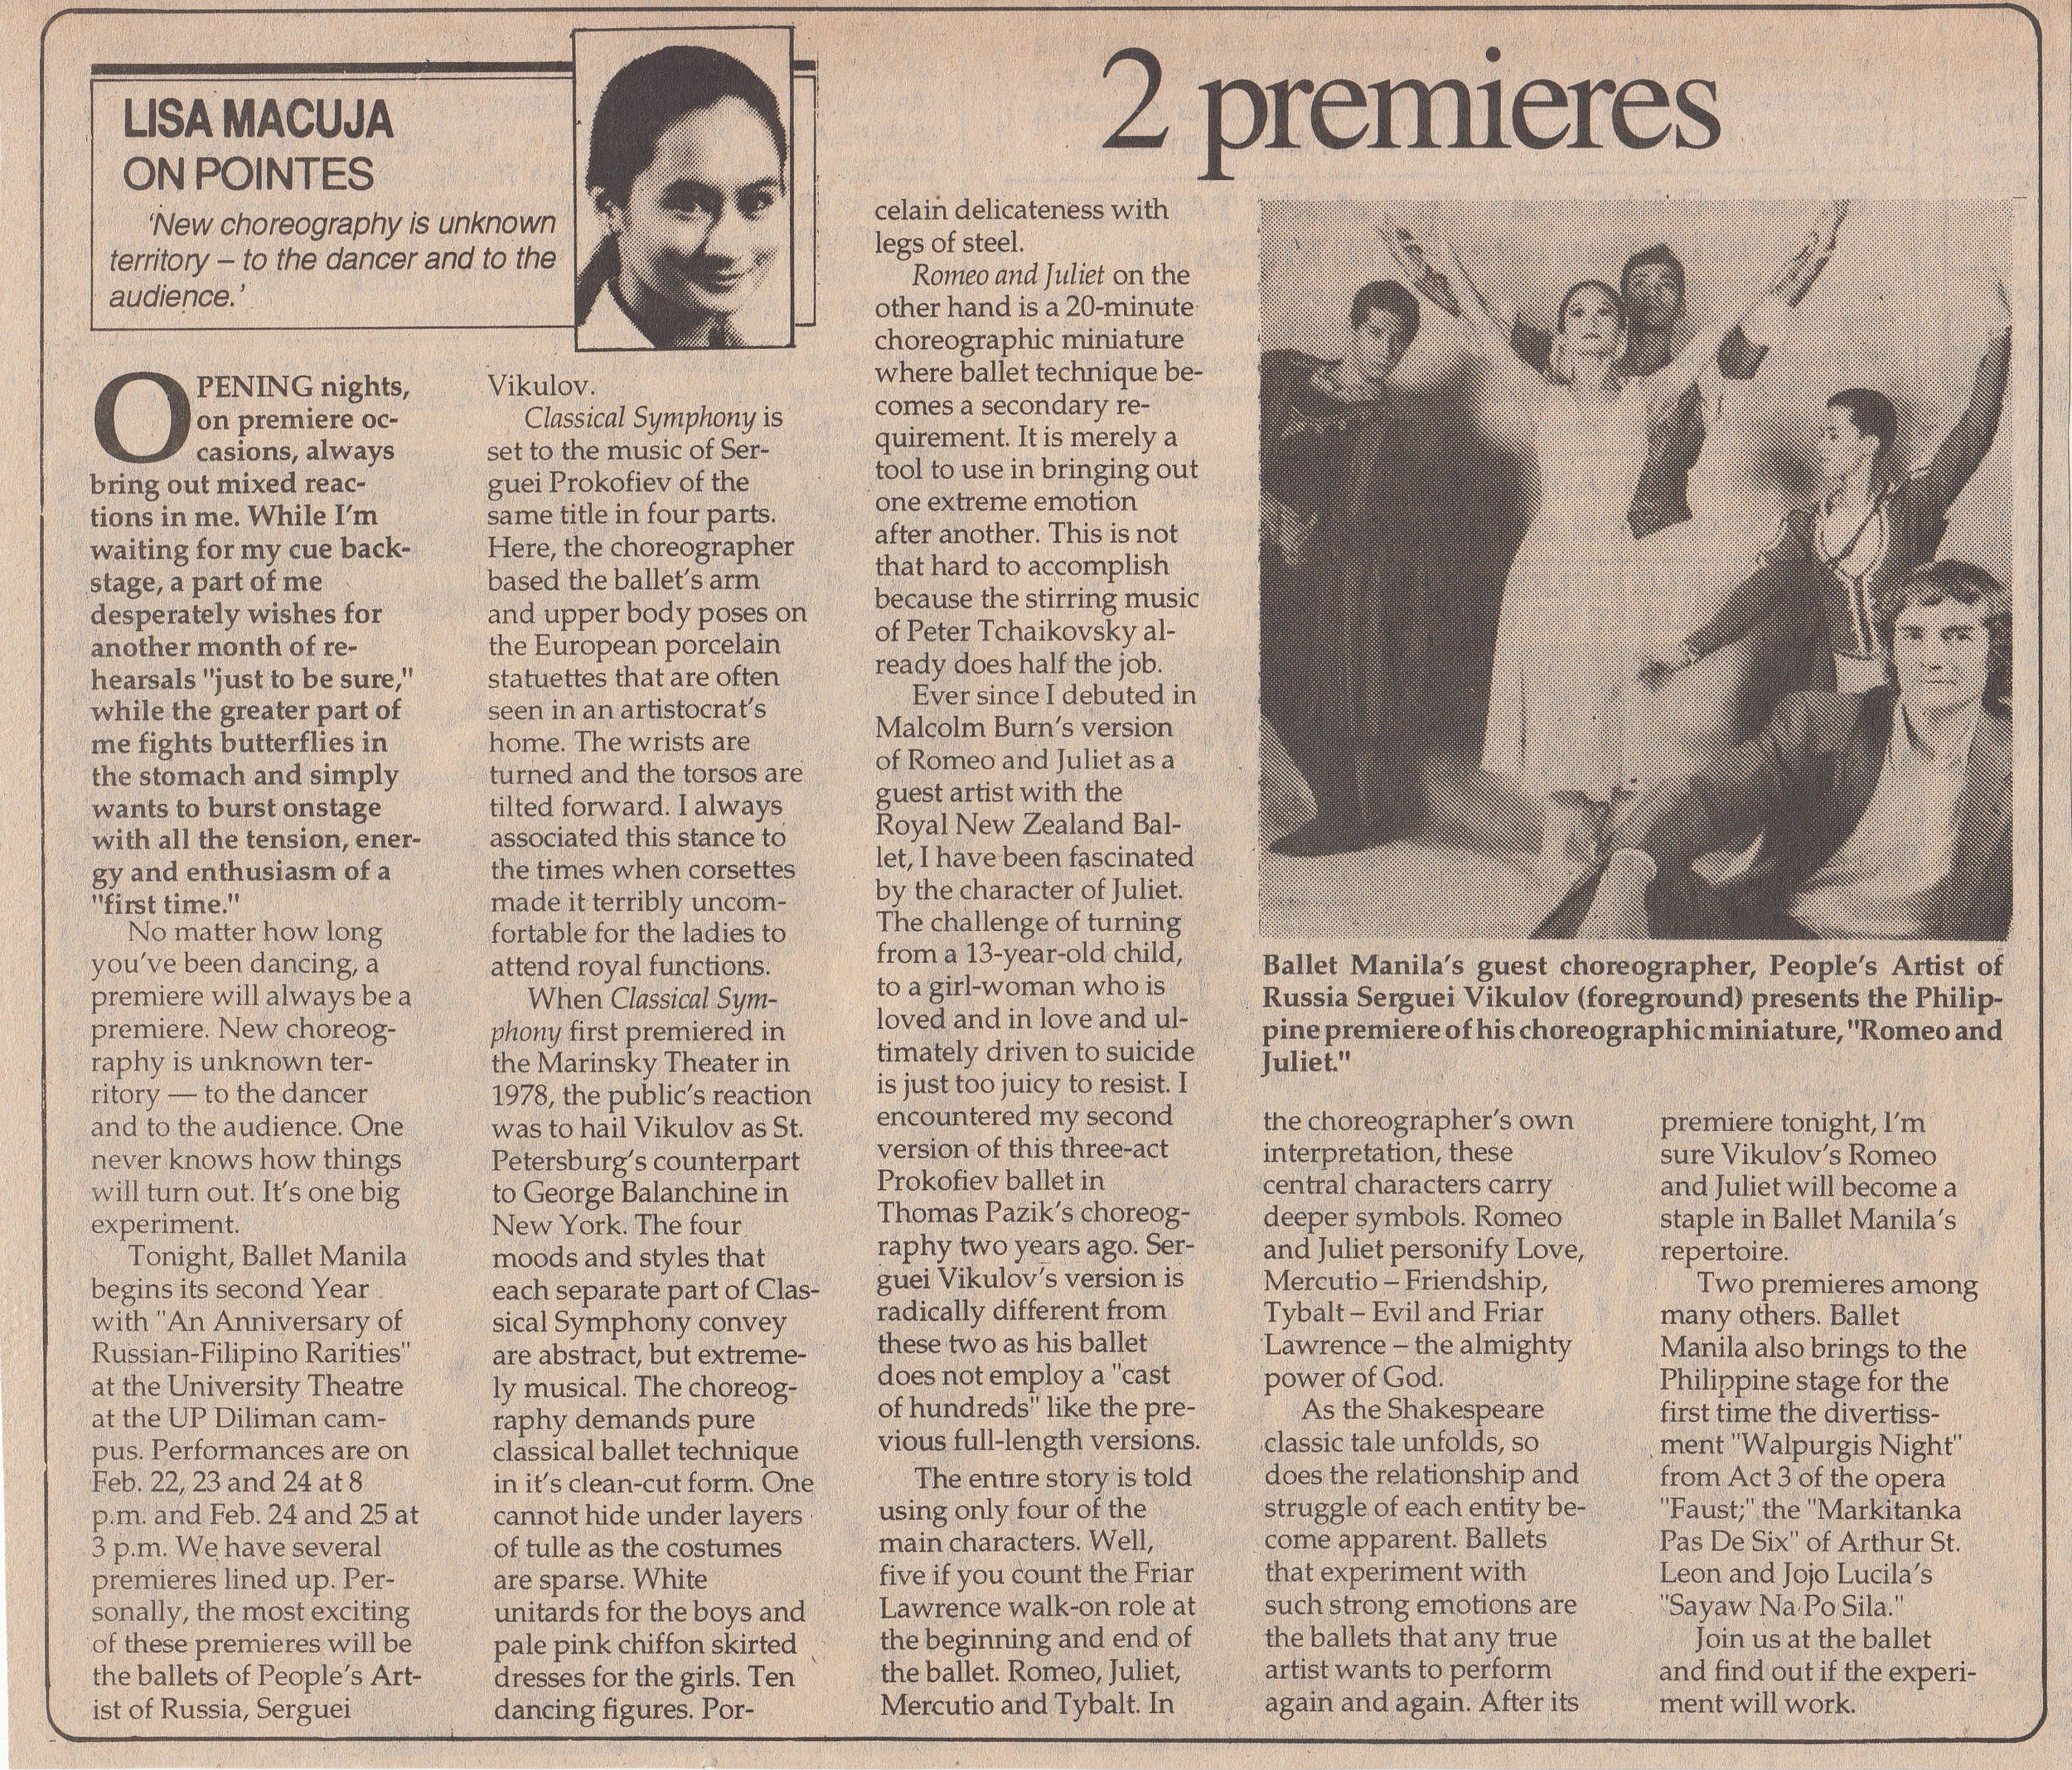 Lisa Macuja writes about both the excitement and the tension of preparing to perform new works. From the Ballet Manila Archives collection